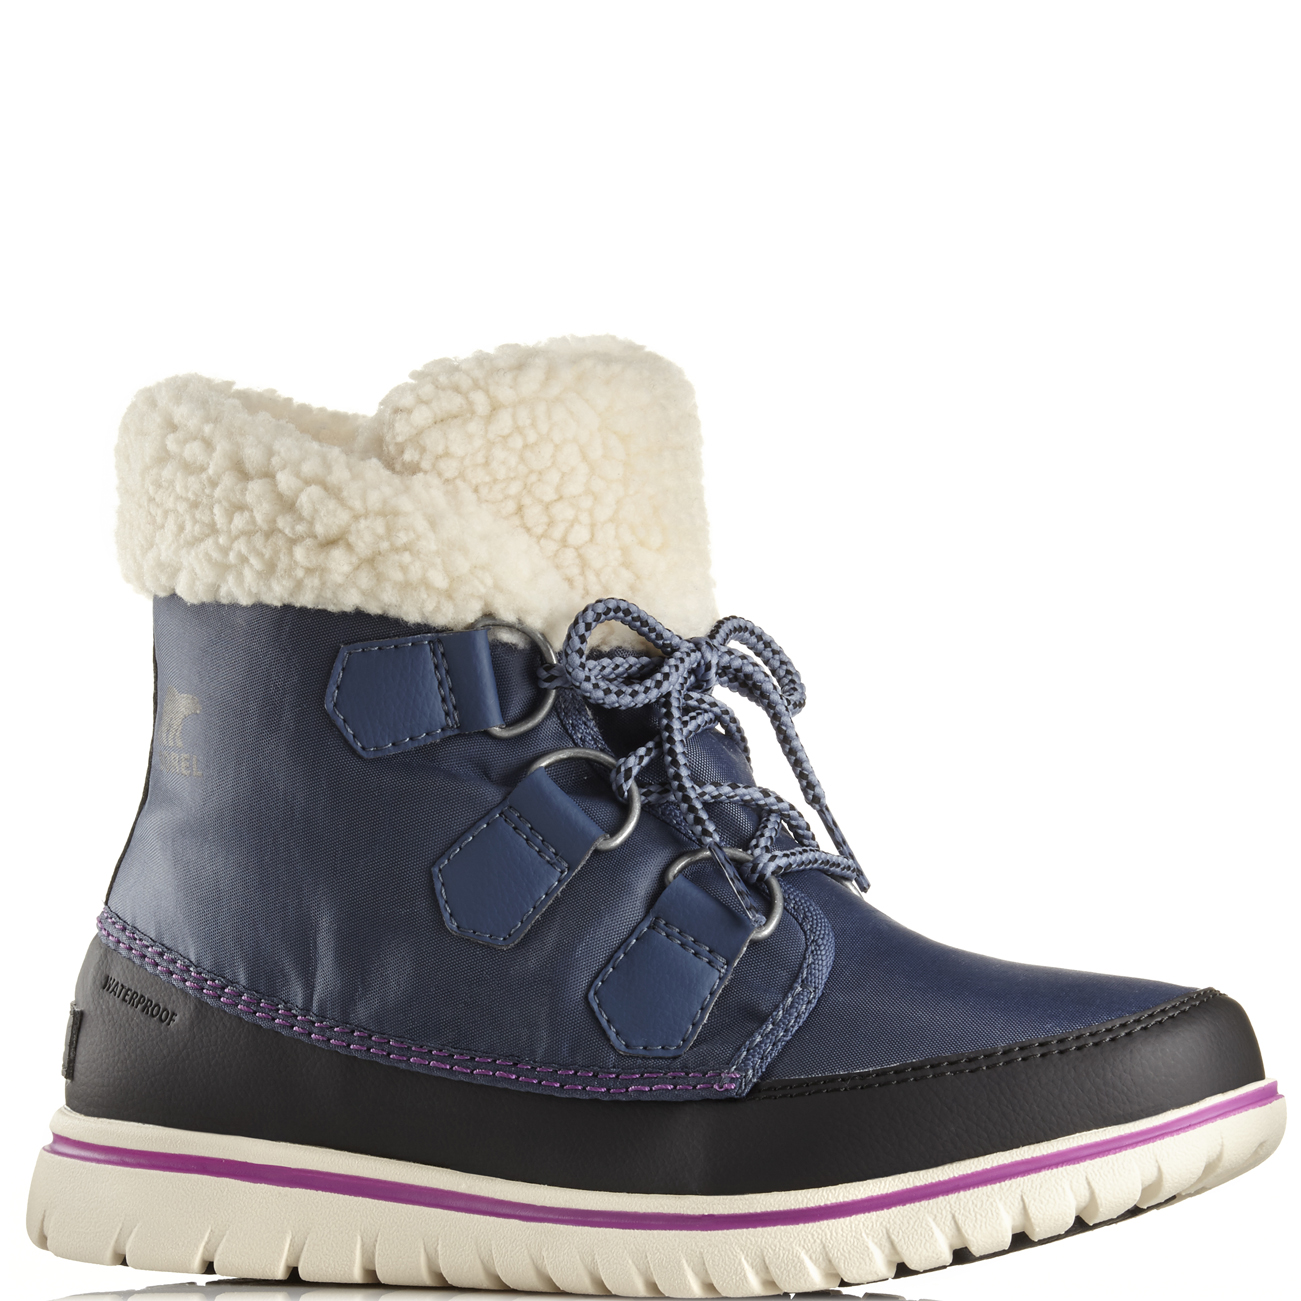 785d547465bd Details about Womens Sorel Cozy Carnival Hiking Casual Winter Snow Walking Ankle  Boots US 5-11